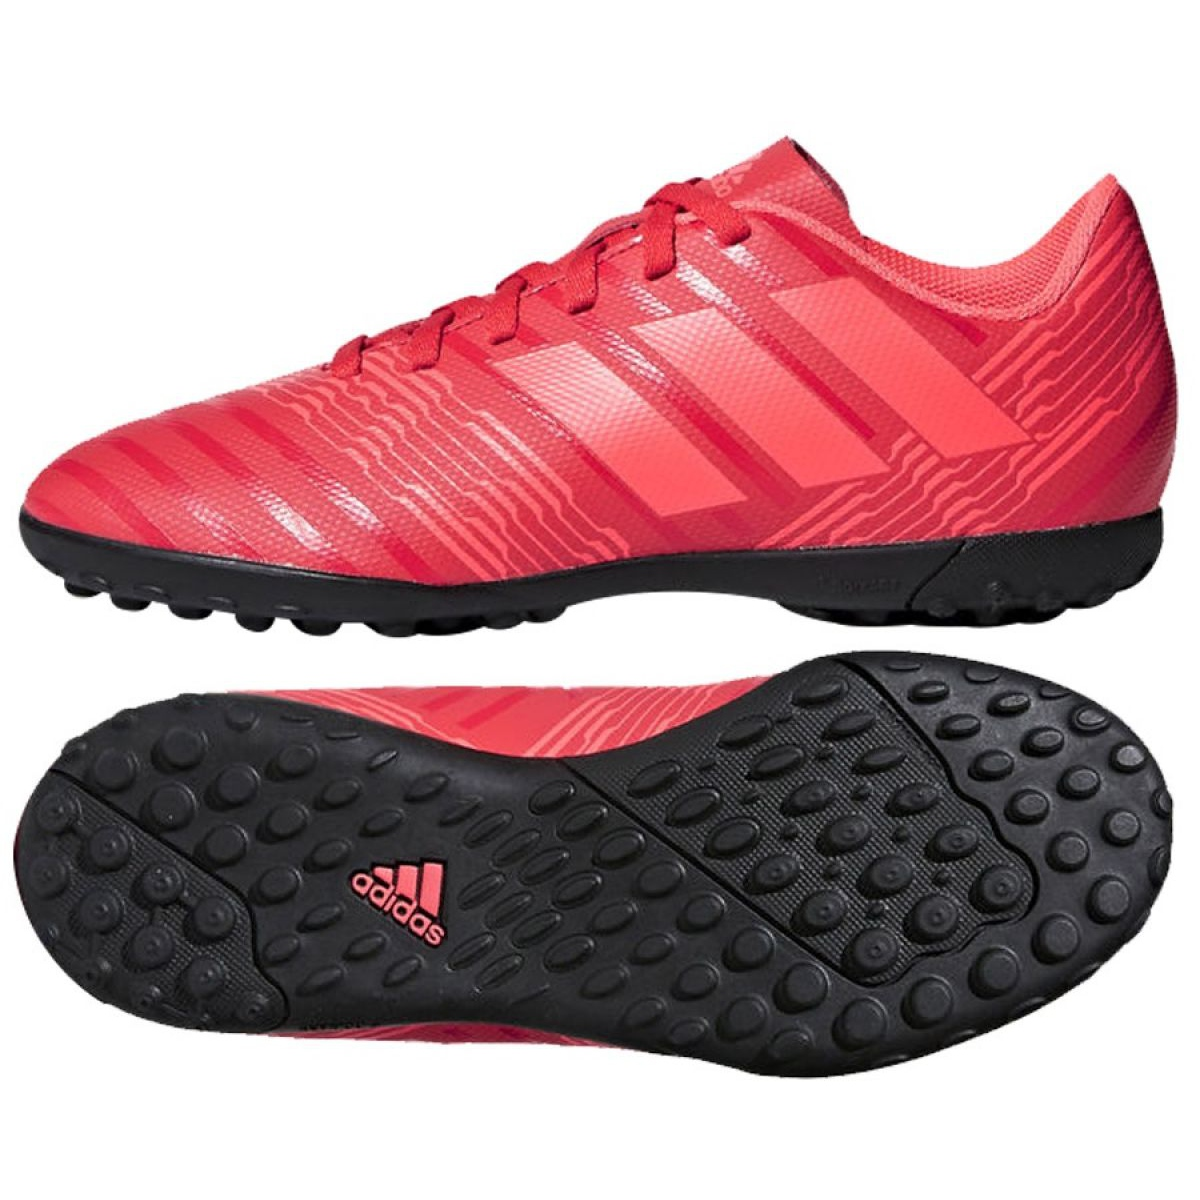 paso Regularmente personalizado  Adidas Nemeziz Tango 17.4 Tf Jr CP9215 football shoes red multicolored -  ButyModne.pl